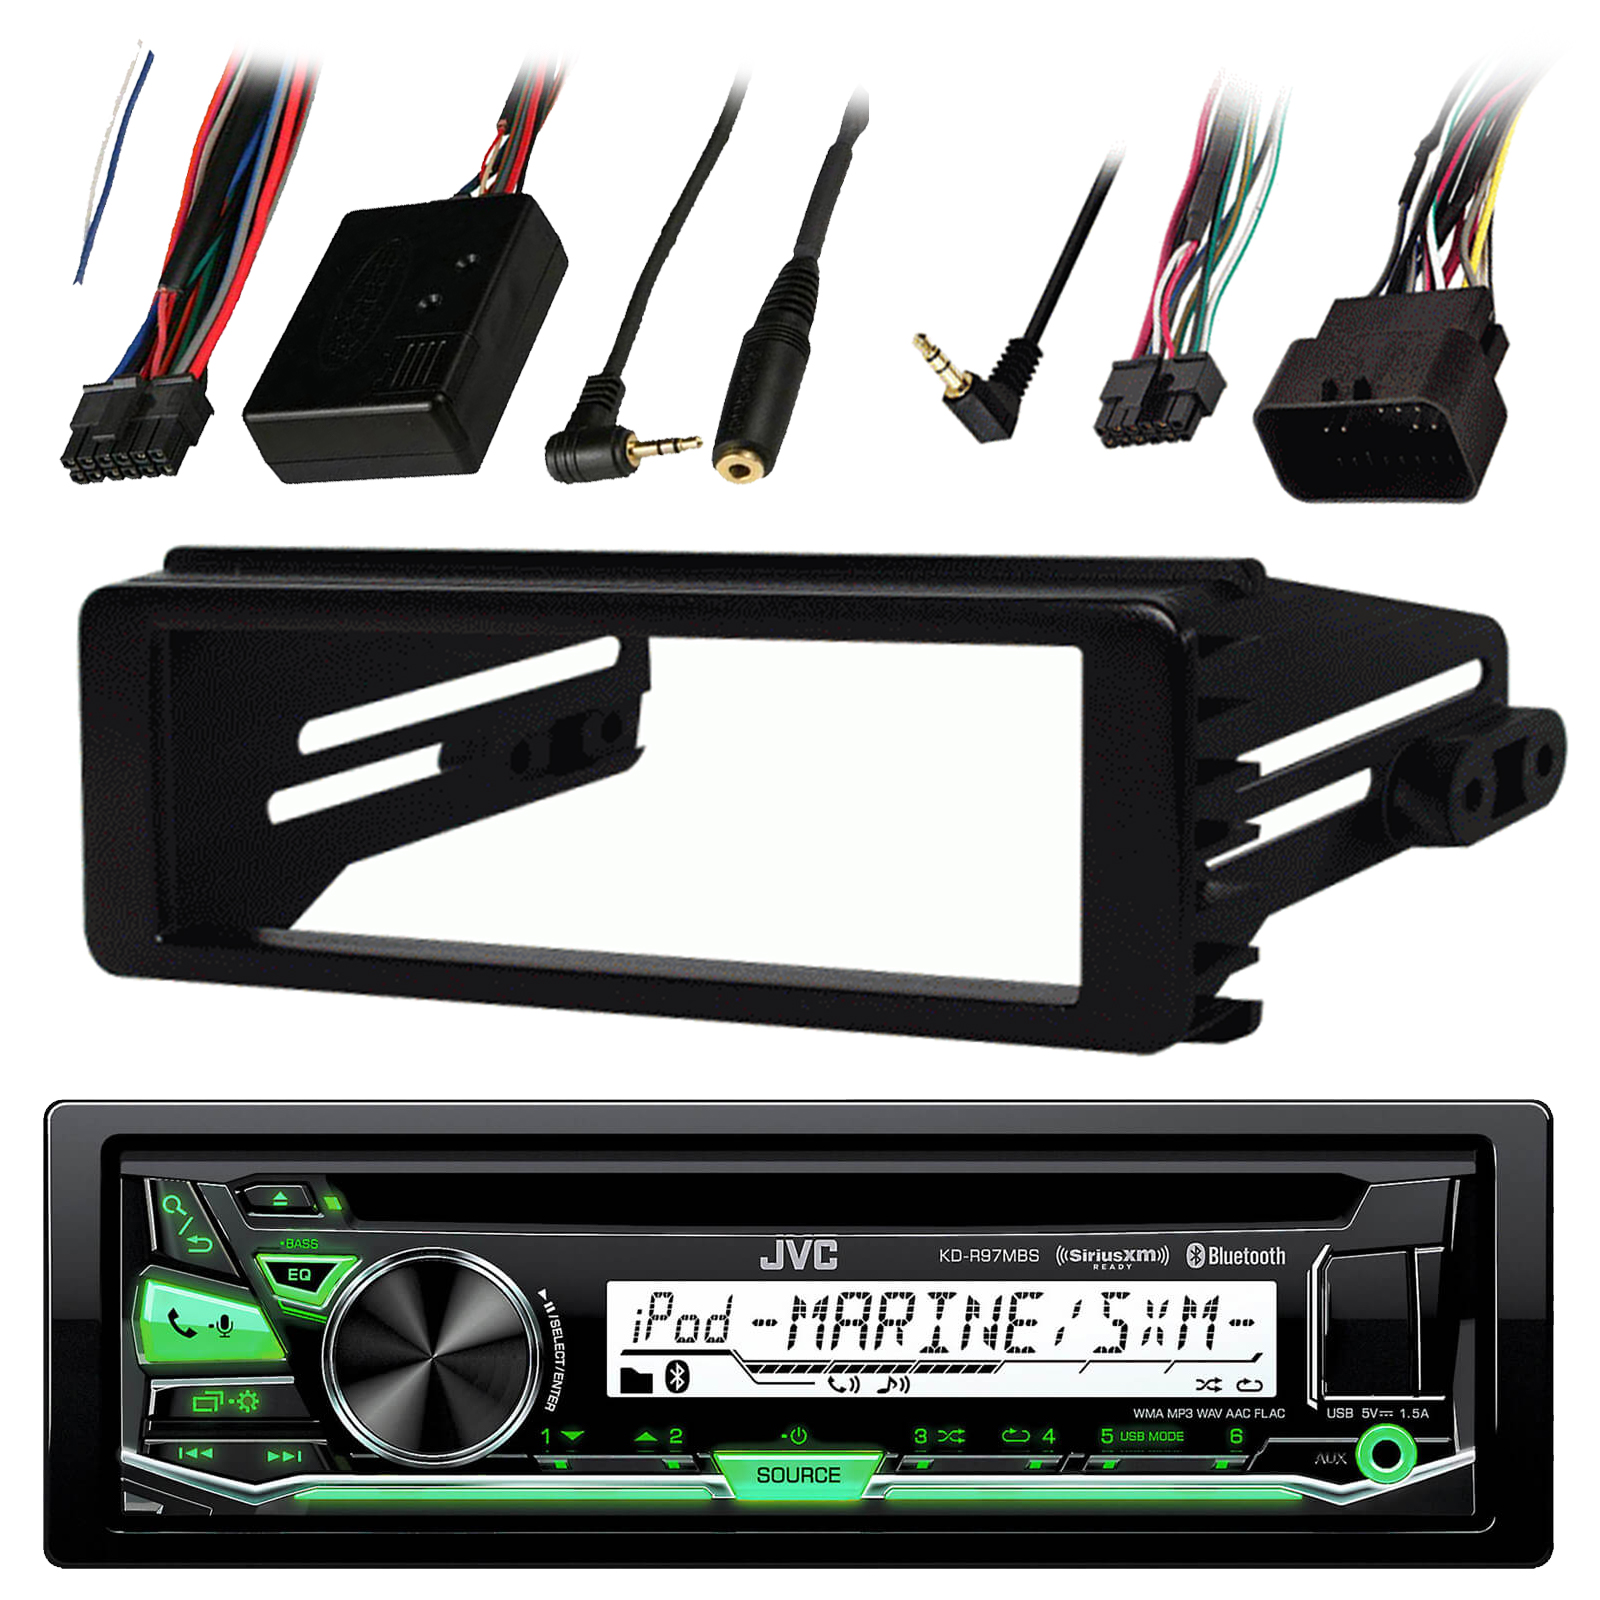 98-2013 JVC Harley Touring ATV Install Adapter Dash Kit FLHT CD MP3 AM//FM Radio Stereo with Bluetooth FLHTC CD Dash FLHX with Enrock Marine Radio Antenna Stereo Cover